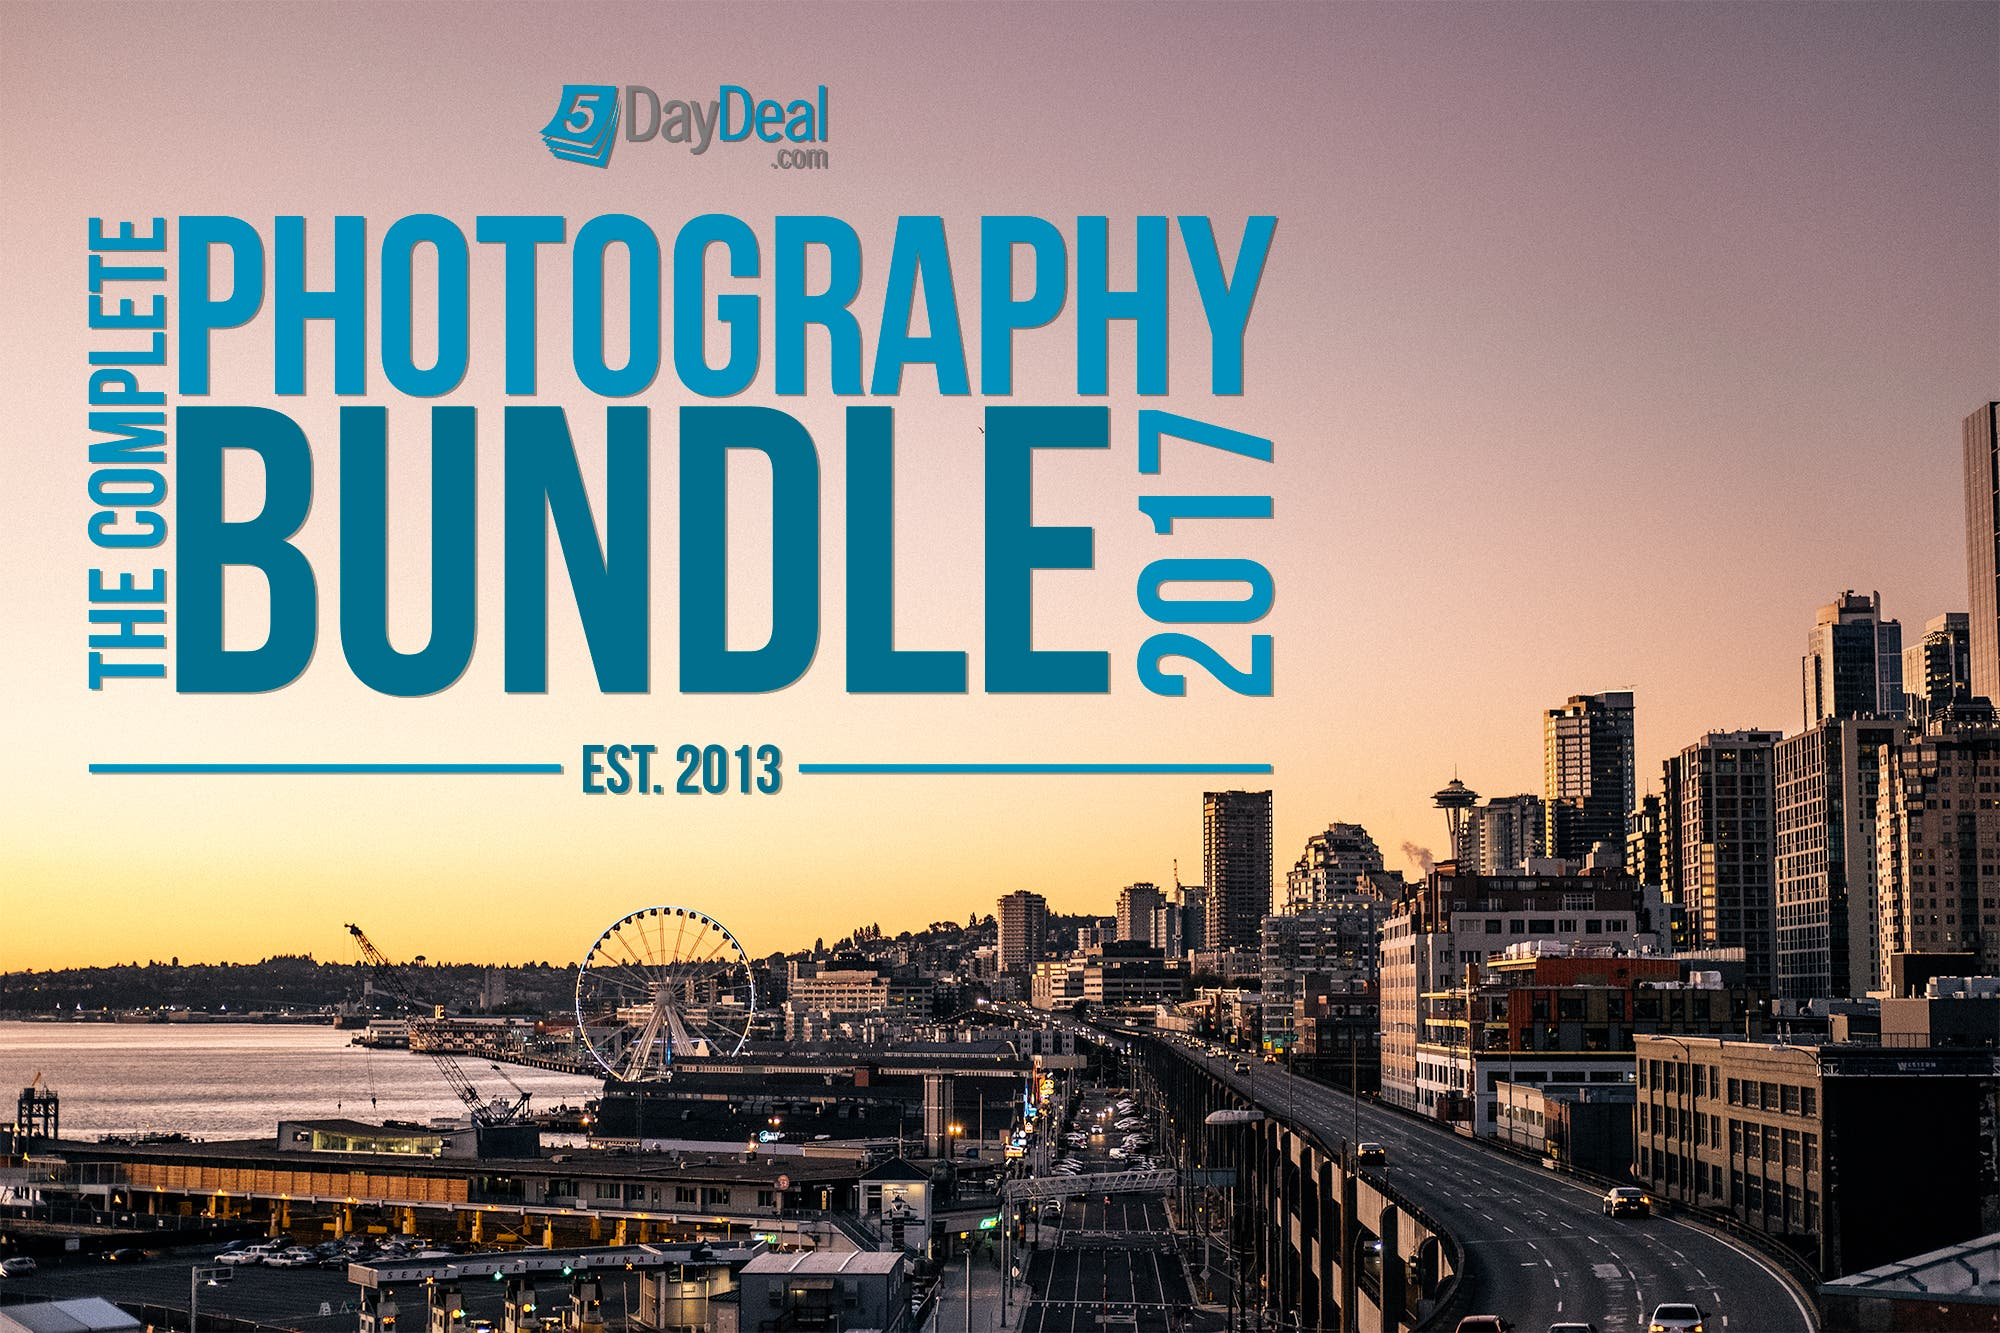 5DayDeal 2017 Complete Photography Bundle Is Here!